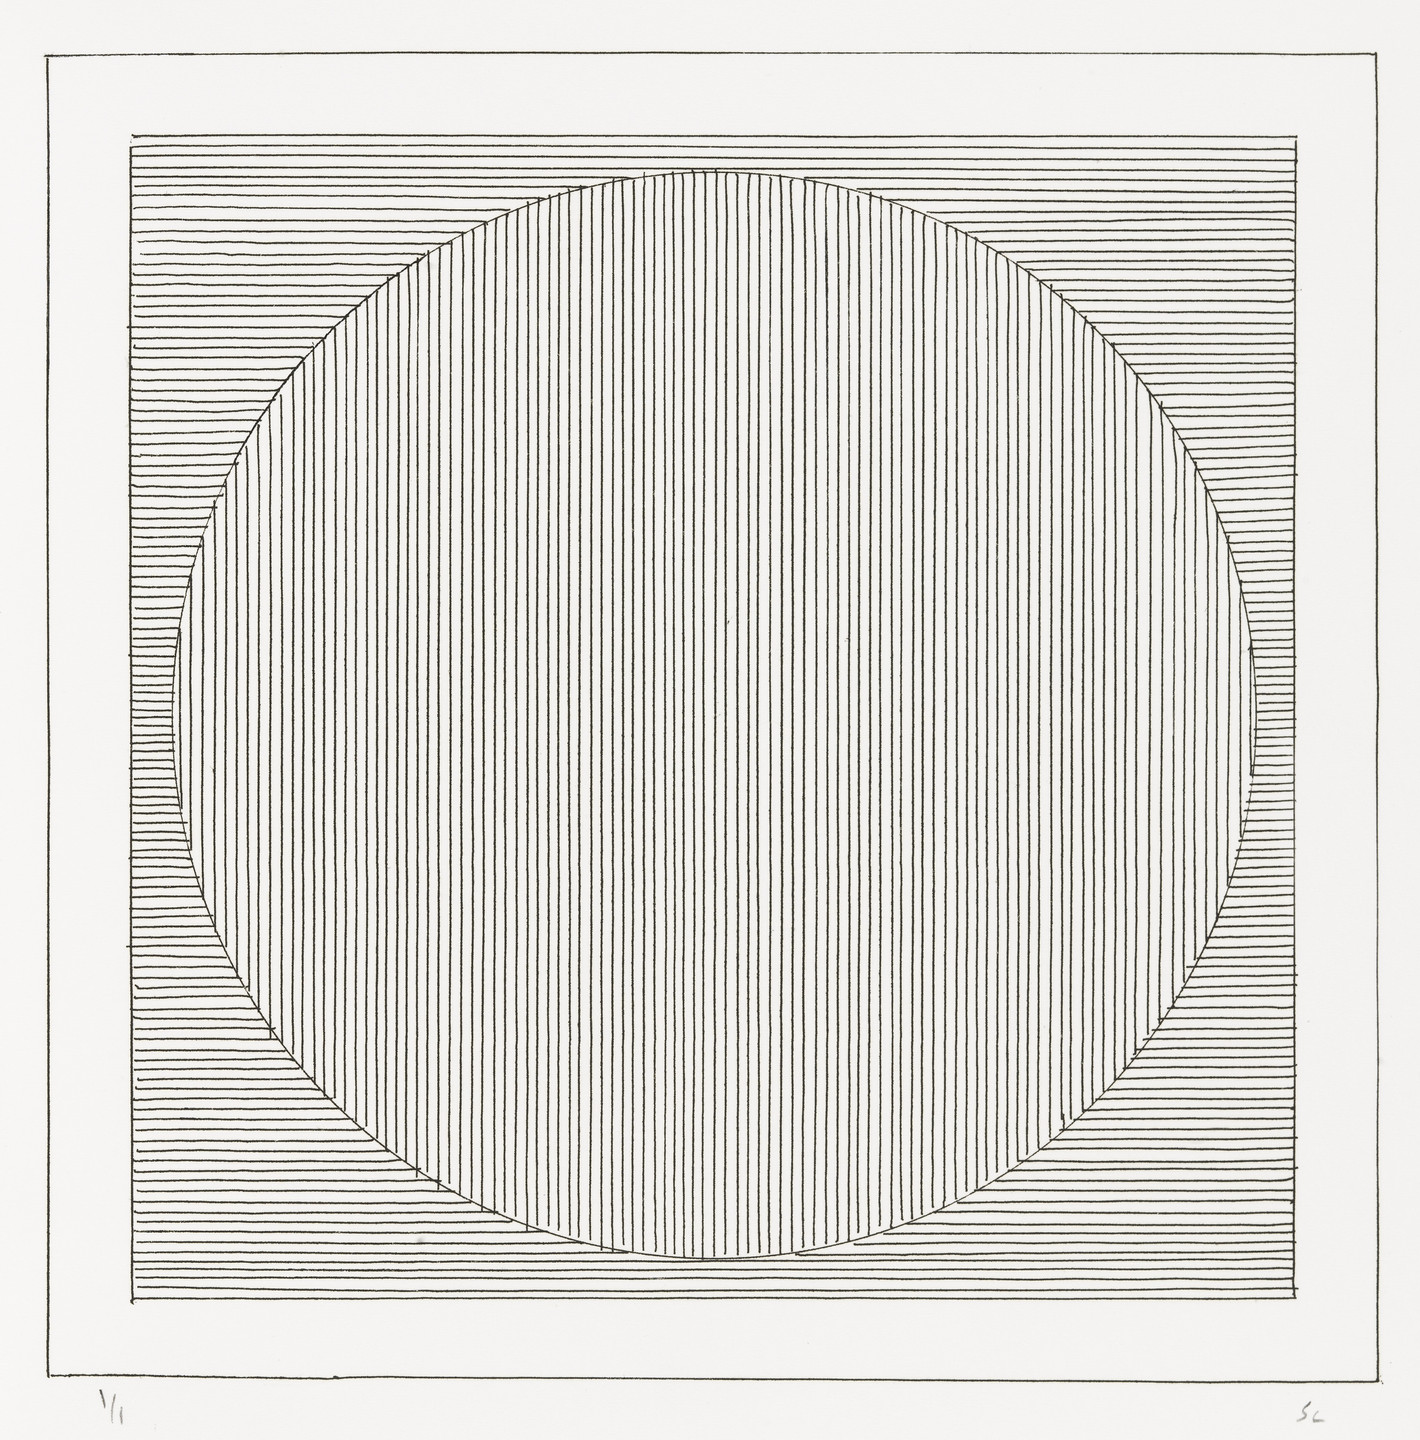 Sol LeWitt. Plate (folio 3) from Six Geometric Figures and All Their Combinations, Volume II. 1980